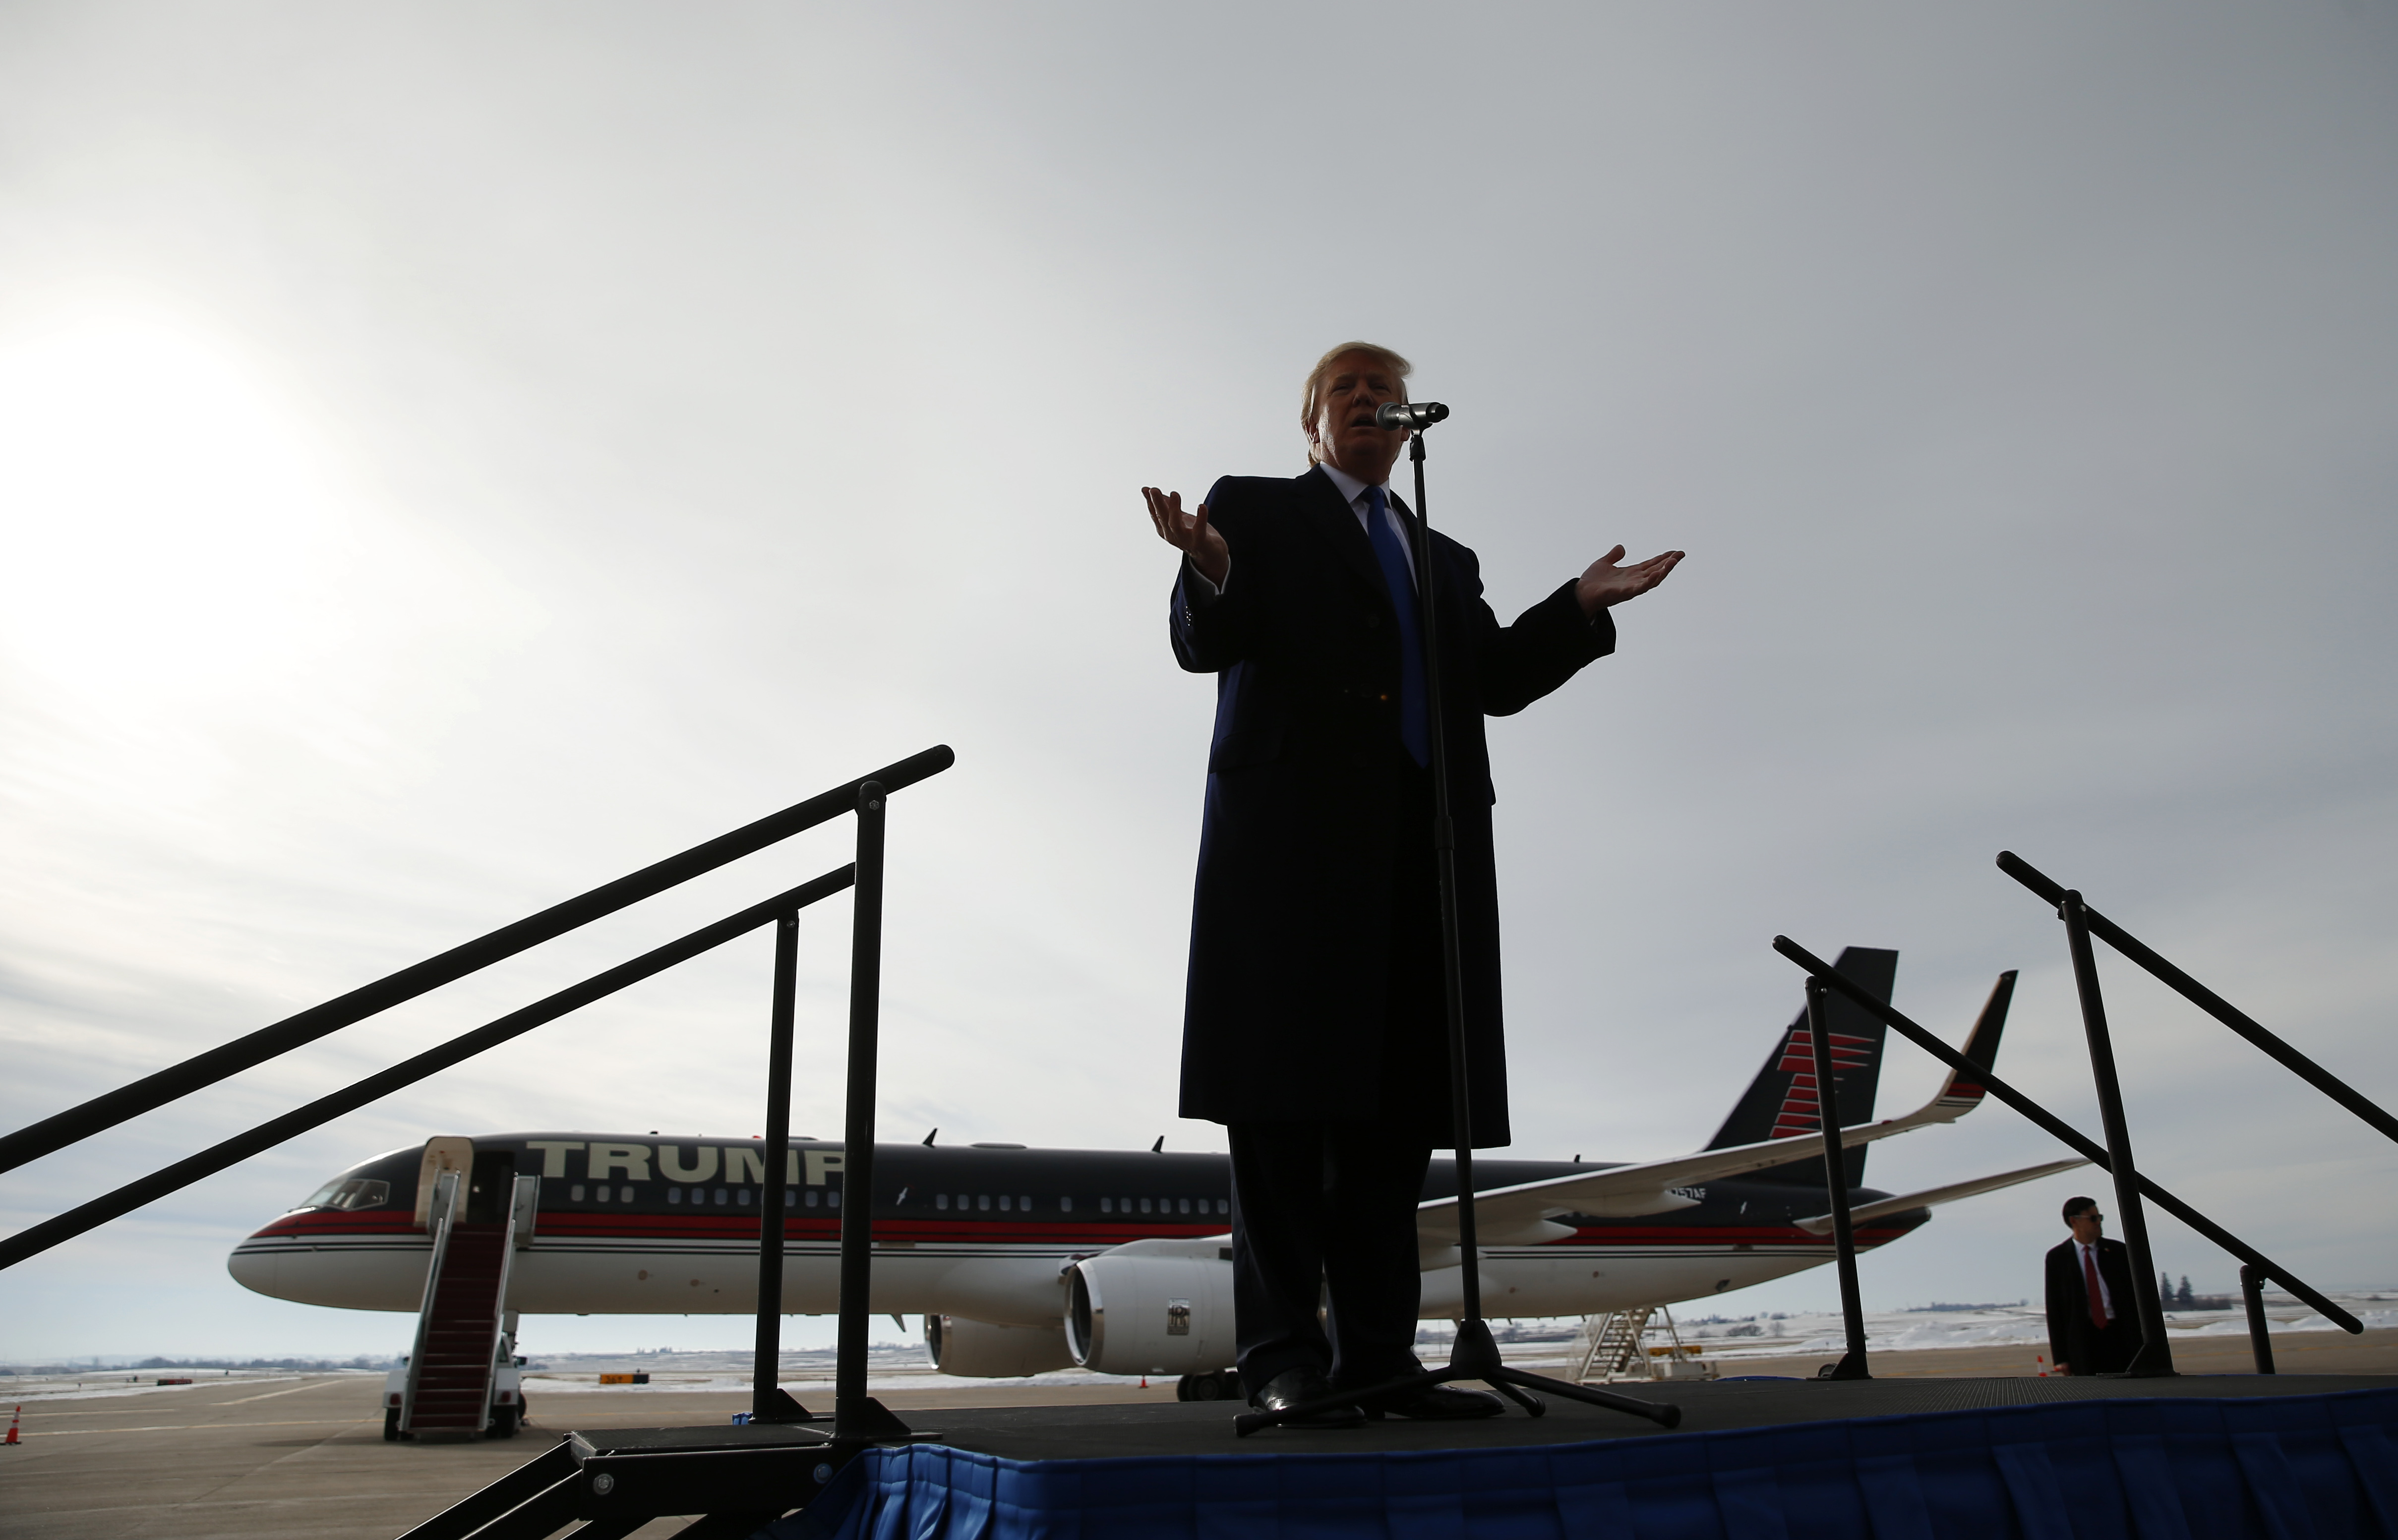 Donald Trump speaks during a campaign event in Dubuque, IA on Jan. 30, 2016.